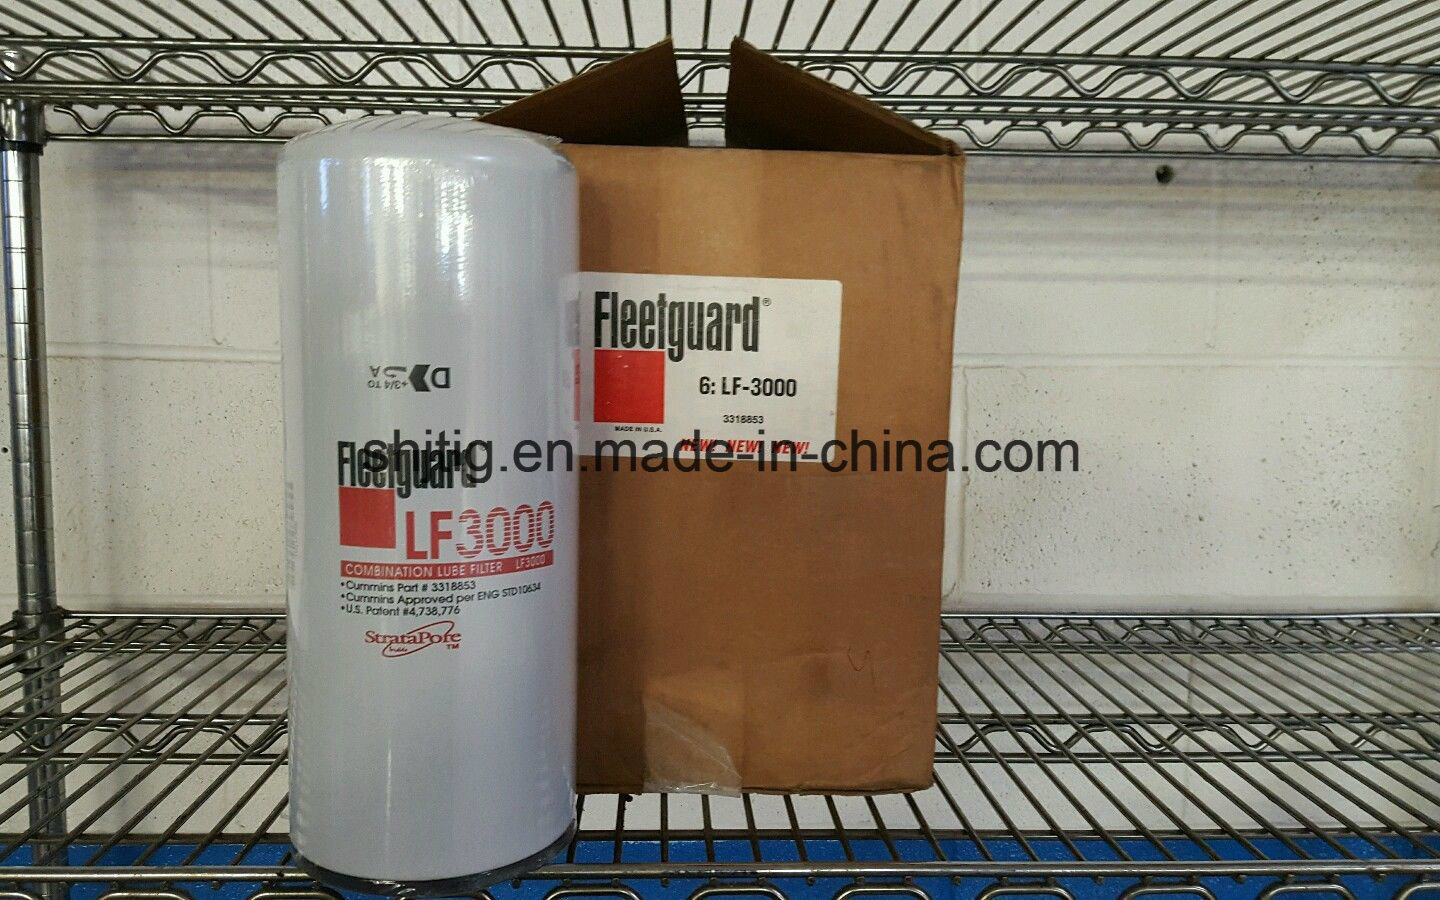 Fleetguard Oil Filter Lf3000 for Cummins Engines